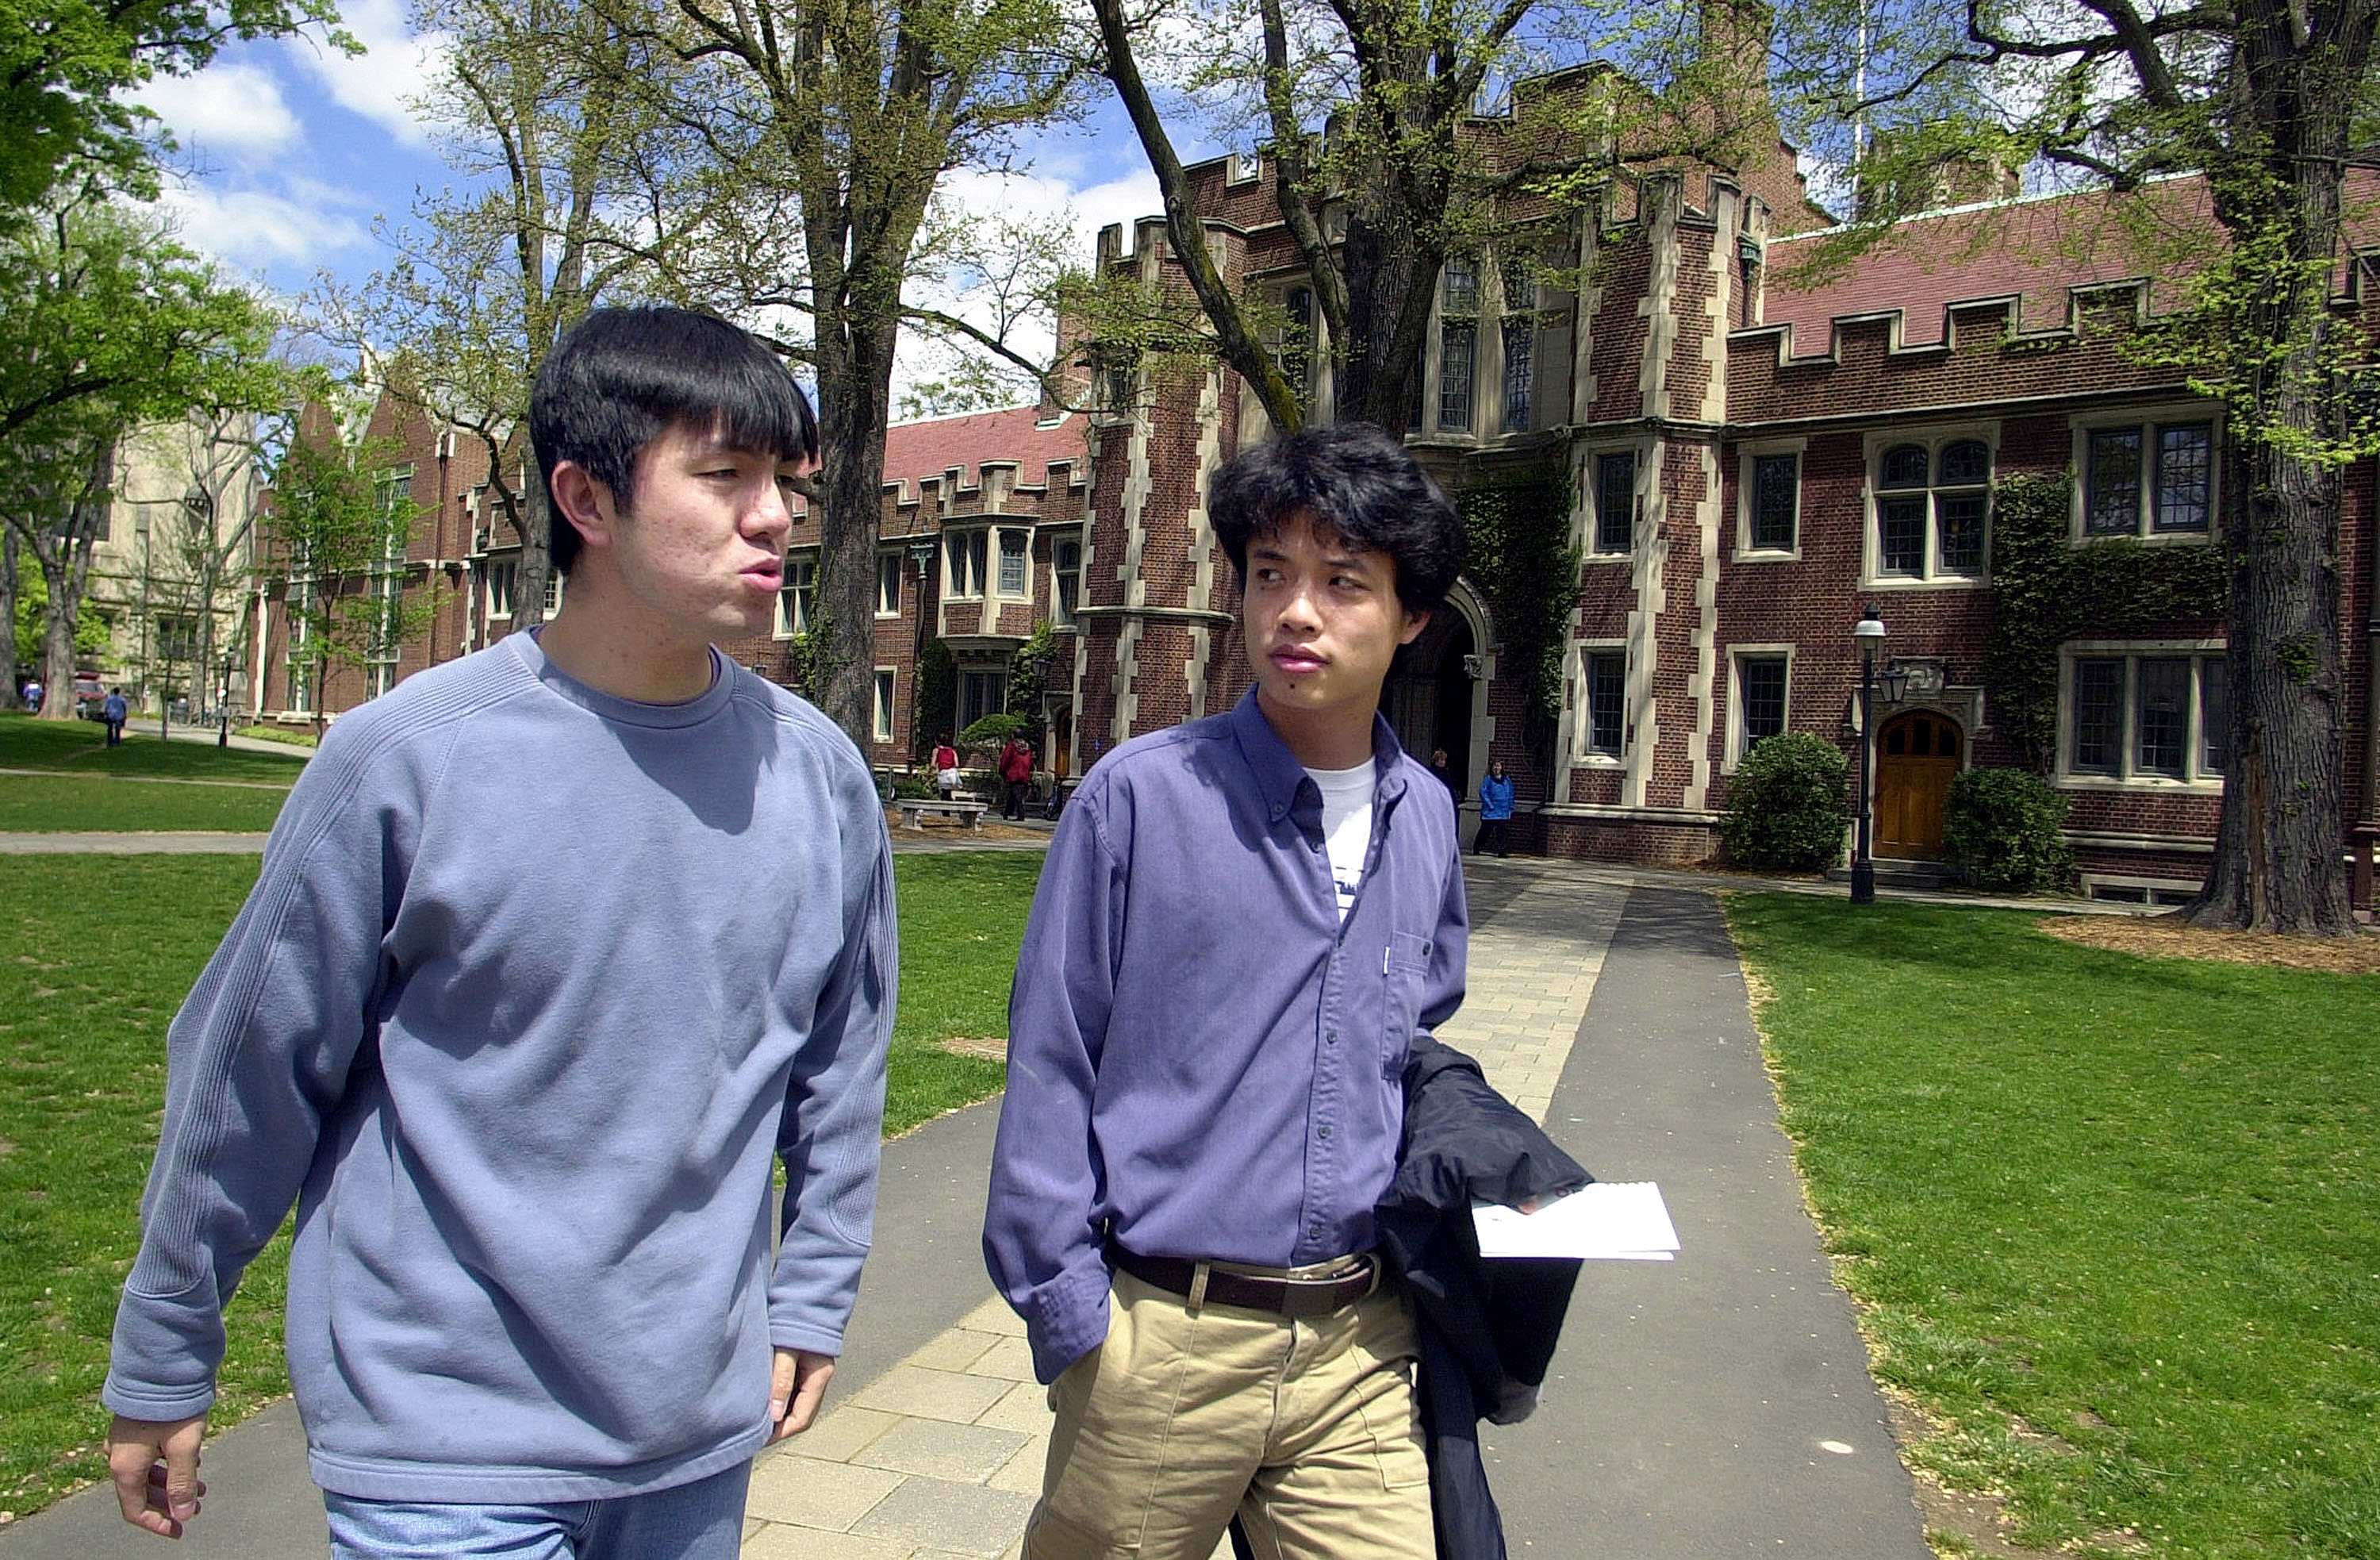 404401 06: Jian Feng Zhen (L), 23, and Dayi Deng, 23, (R), both from China, walk to class on the campus of Princeton University April 23, 2002 in Princeton, NJ. Twenty-six percent of the student population at Princeton University is an ethnic minority, according to a university spokesperson. (Photo by William Thomas Cain/Getty Images)